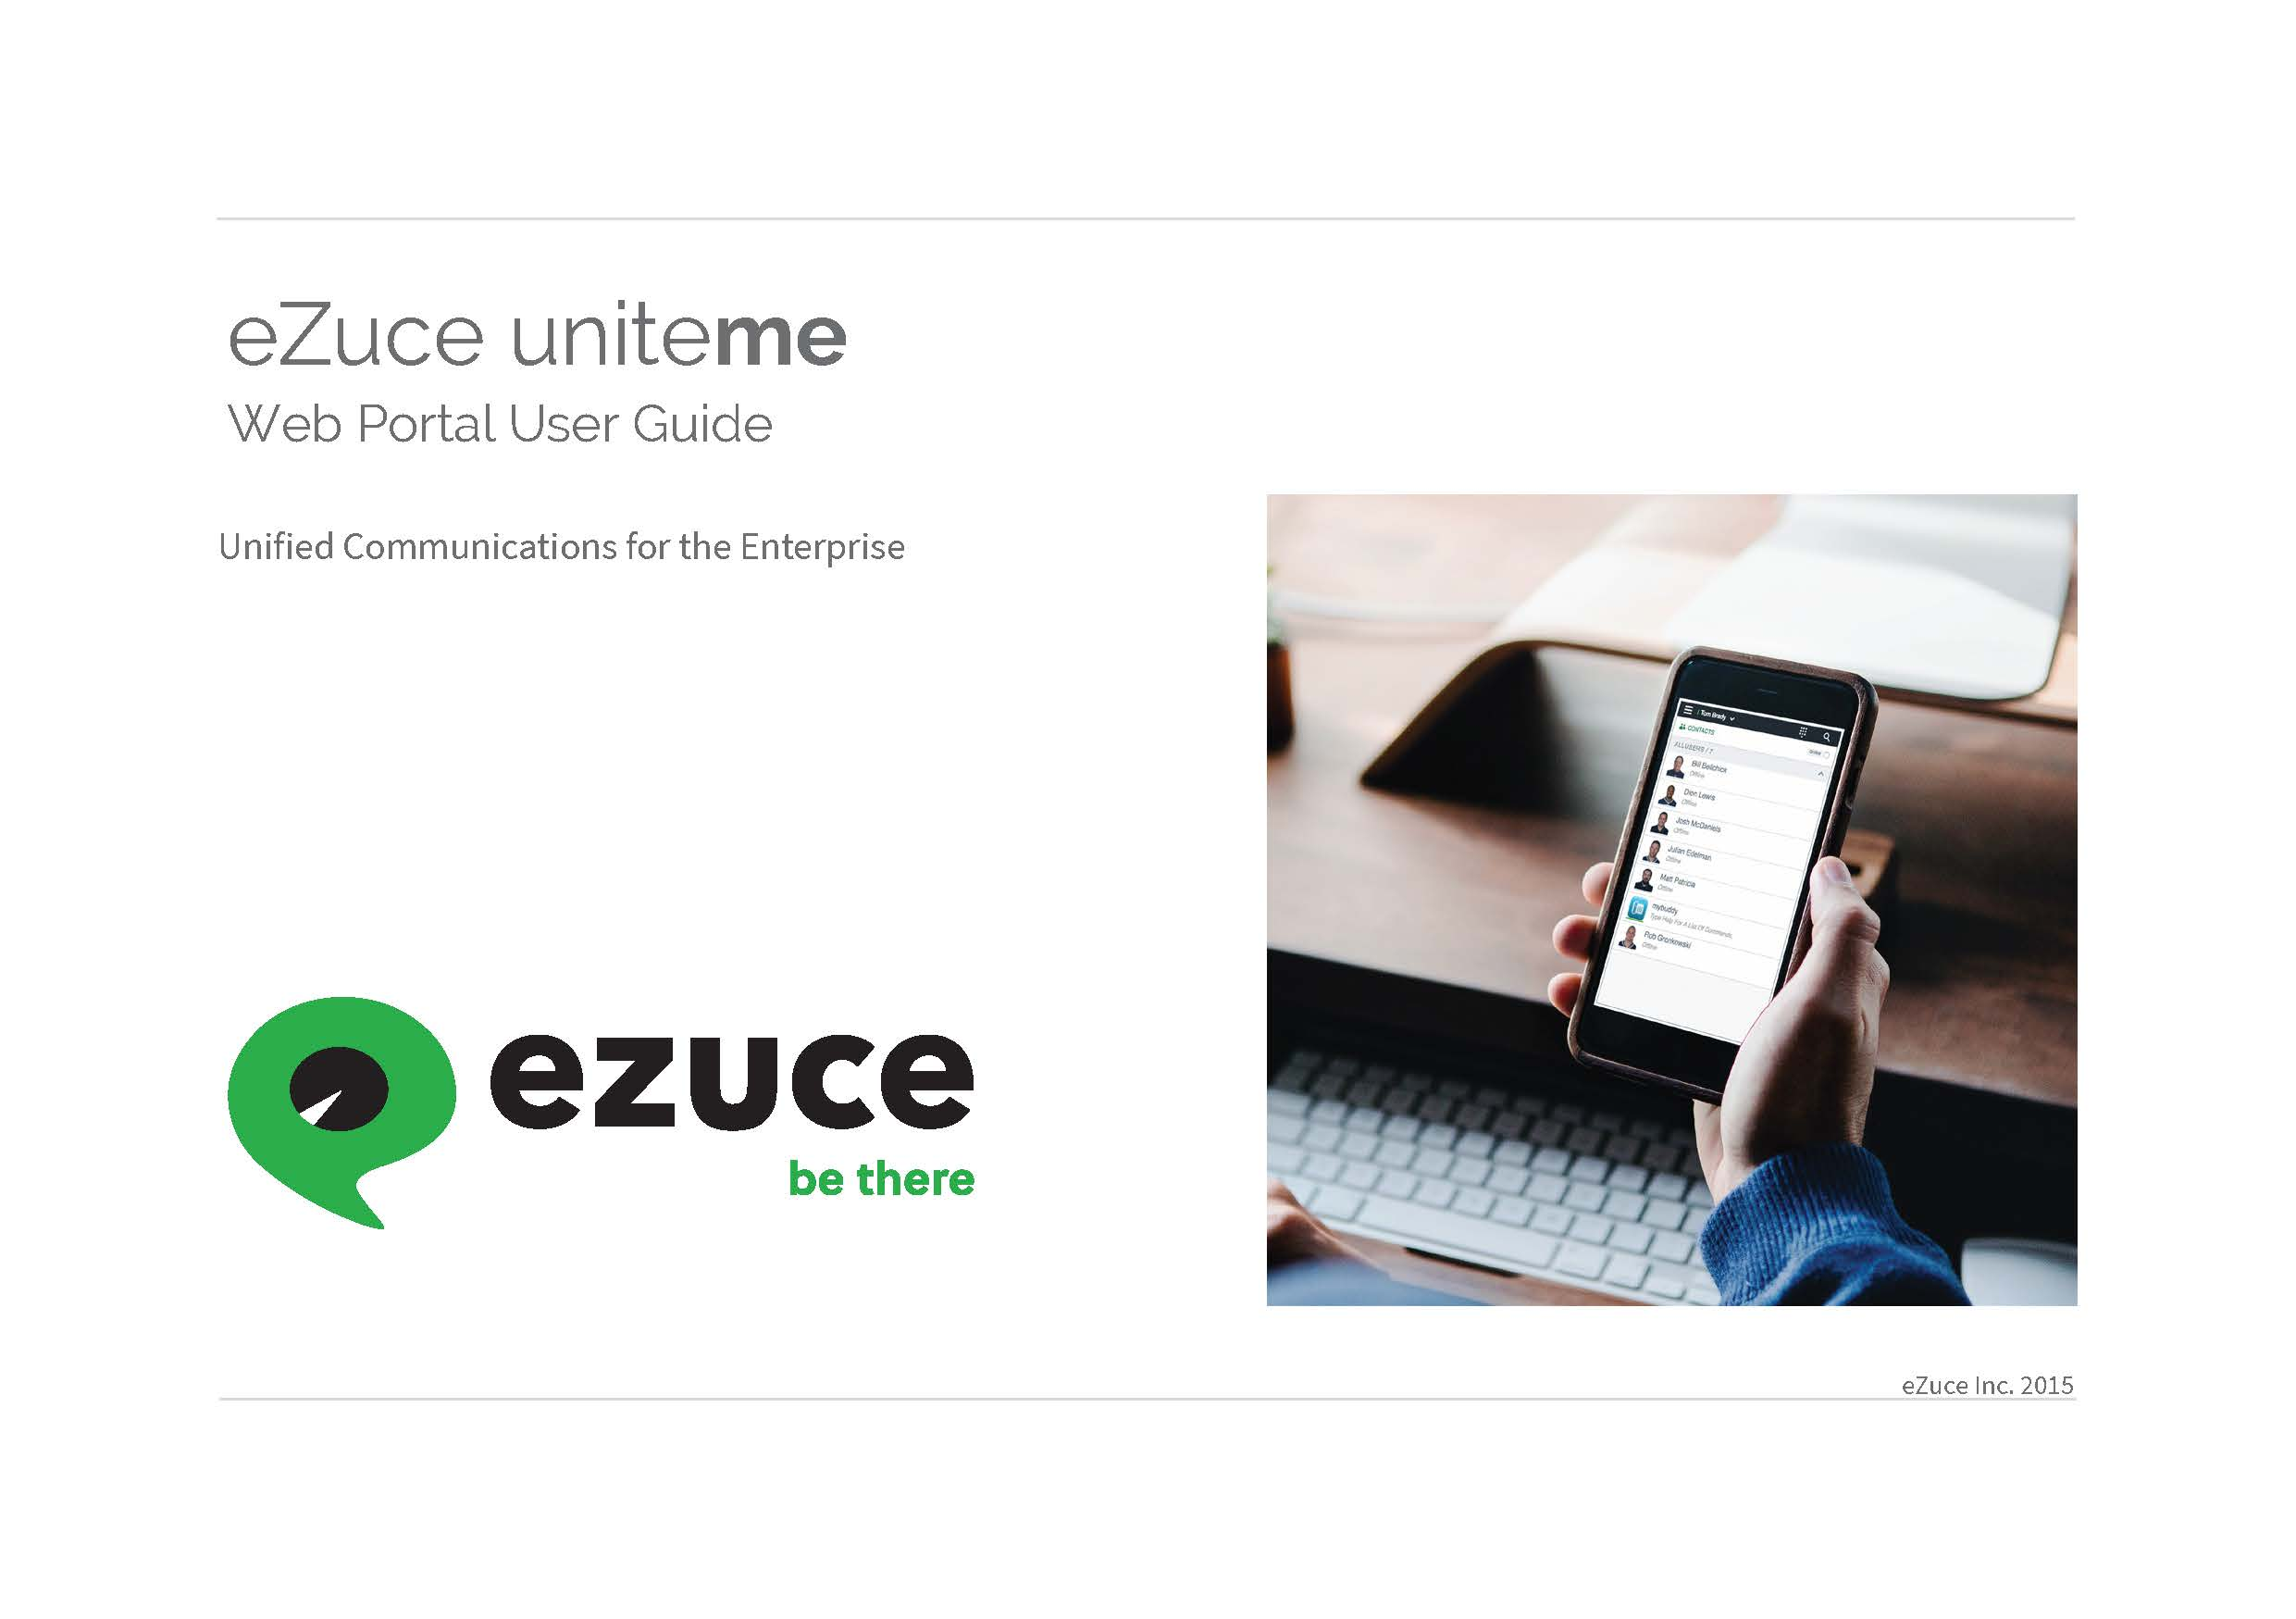 eZuce Uniteme Web Portal User Guide